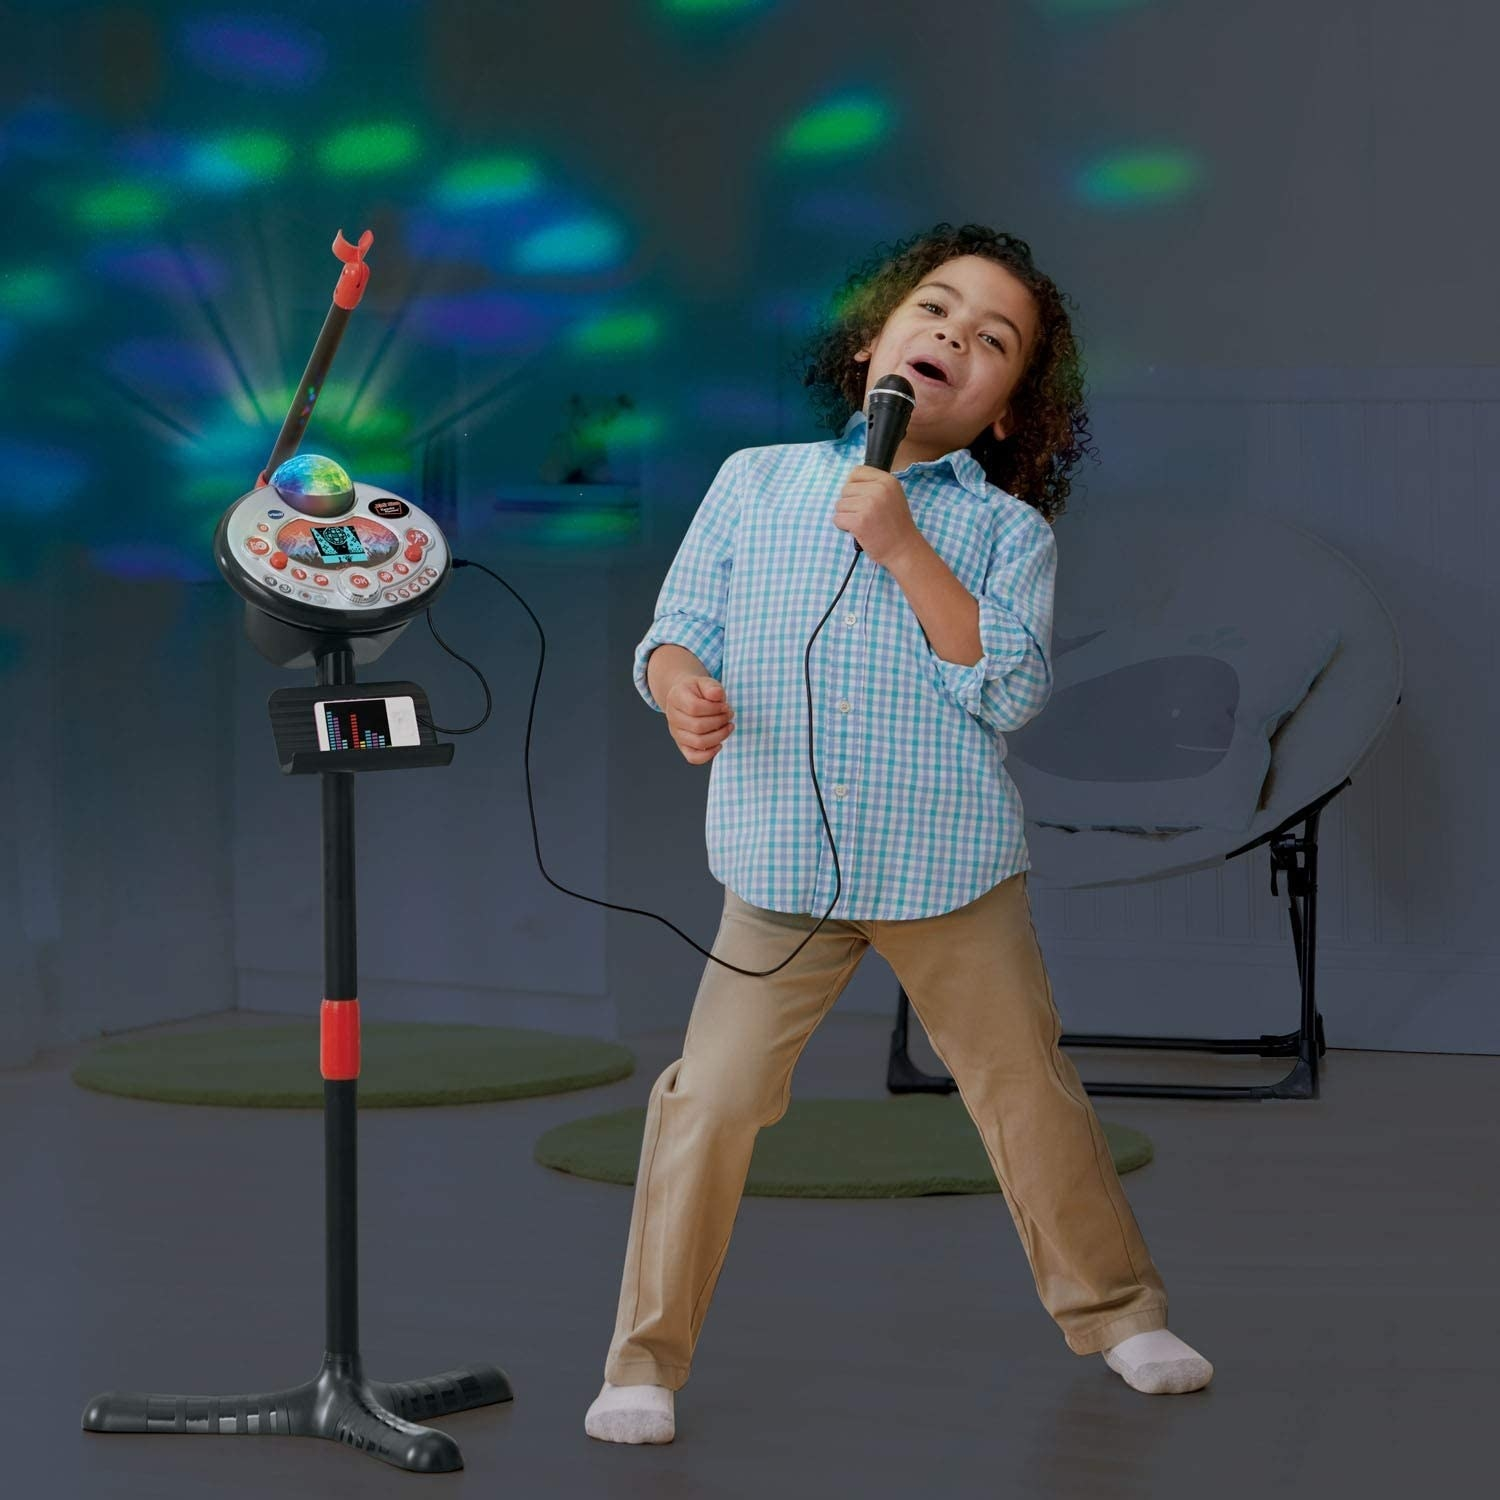 A young boy sings into a handheld microphone and karaoke set.